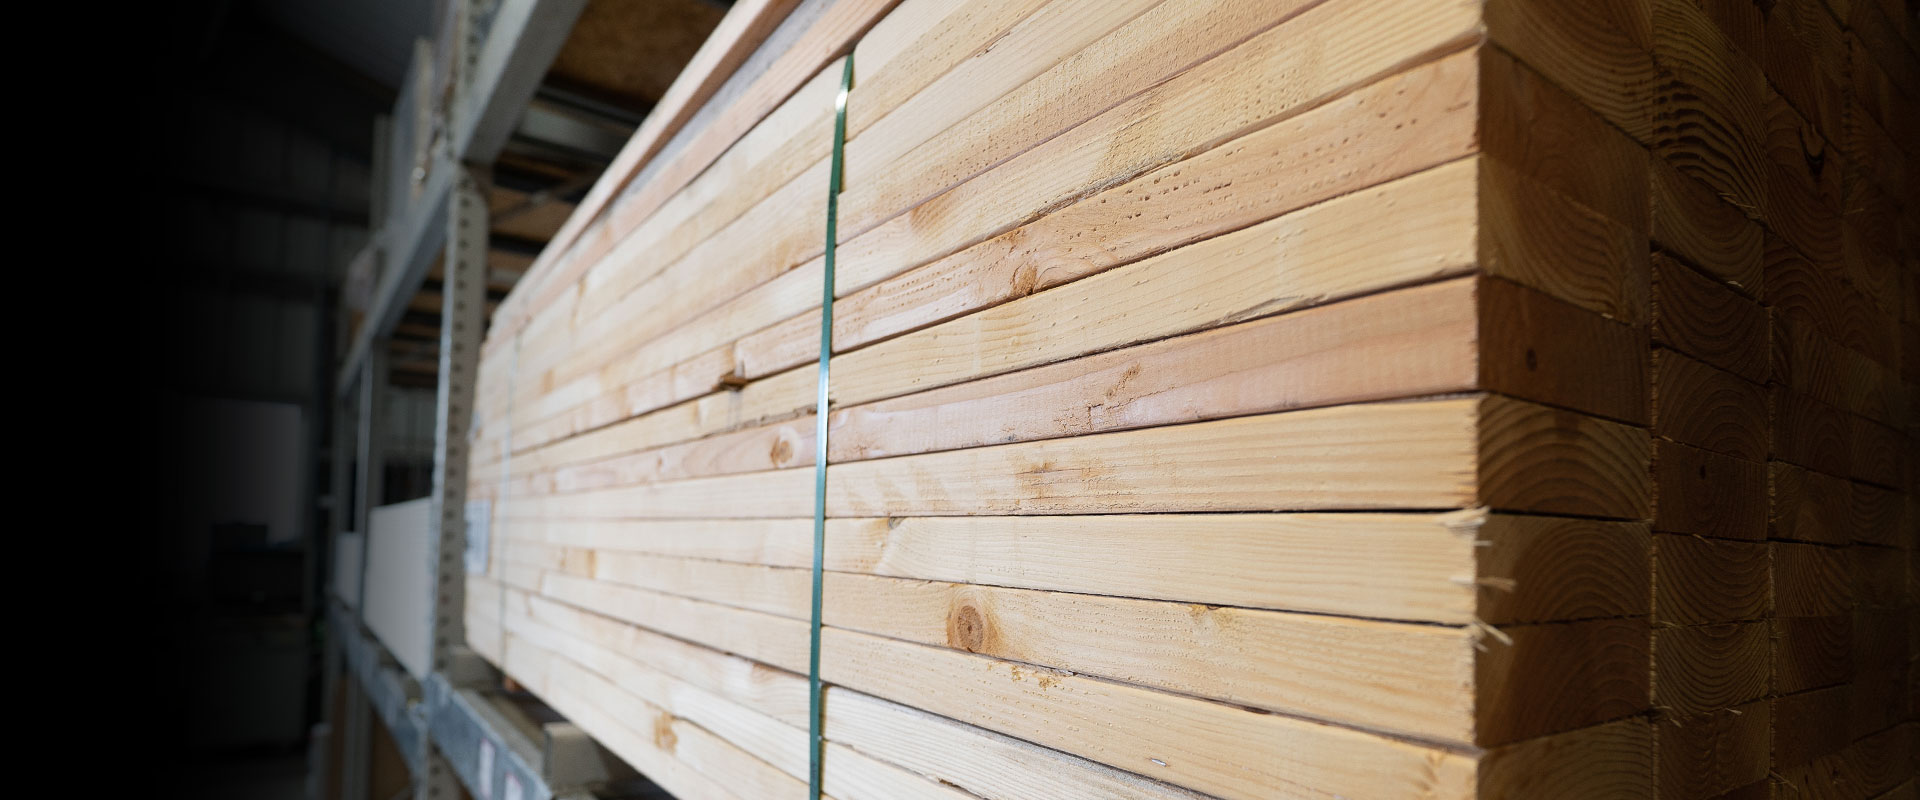 Petes-Ace-Hardware-Building-Materials